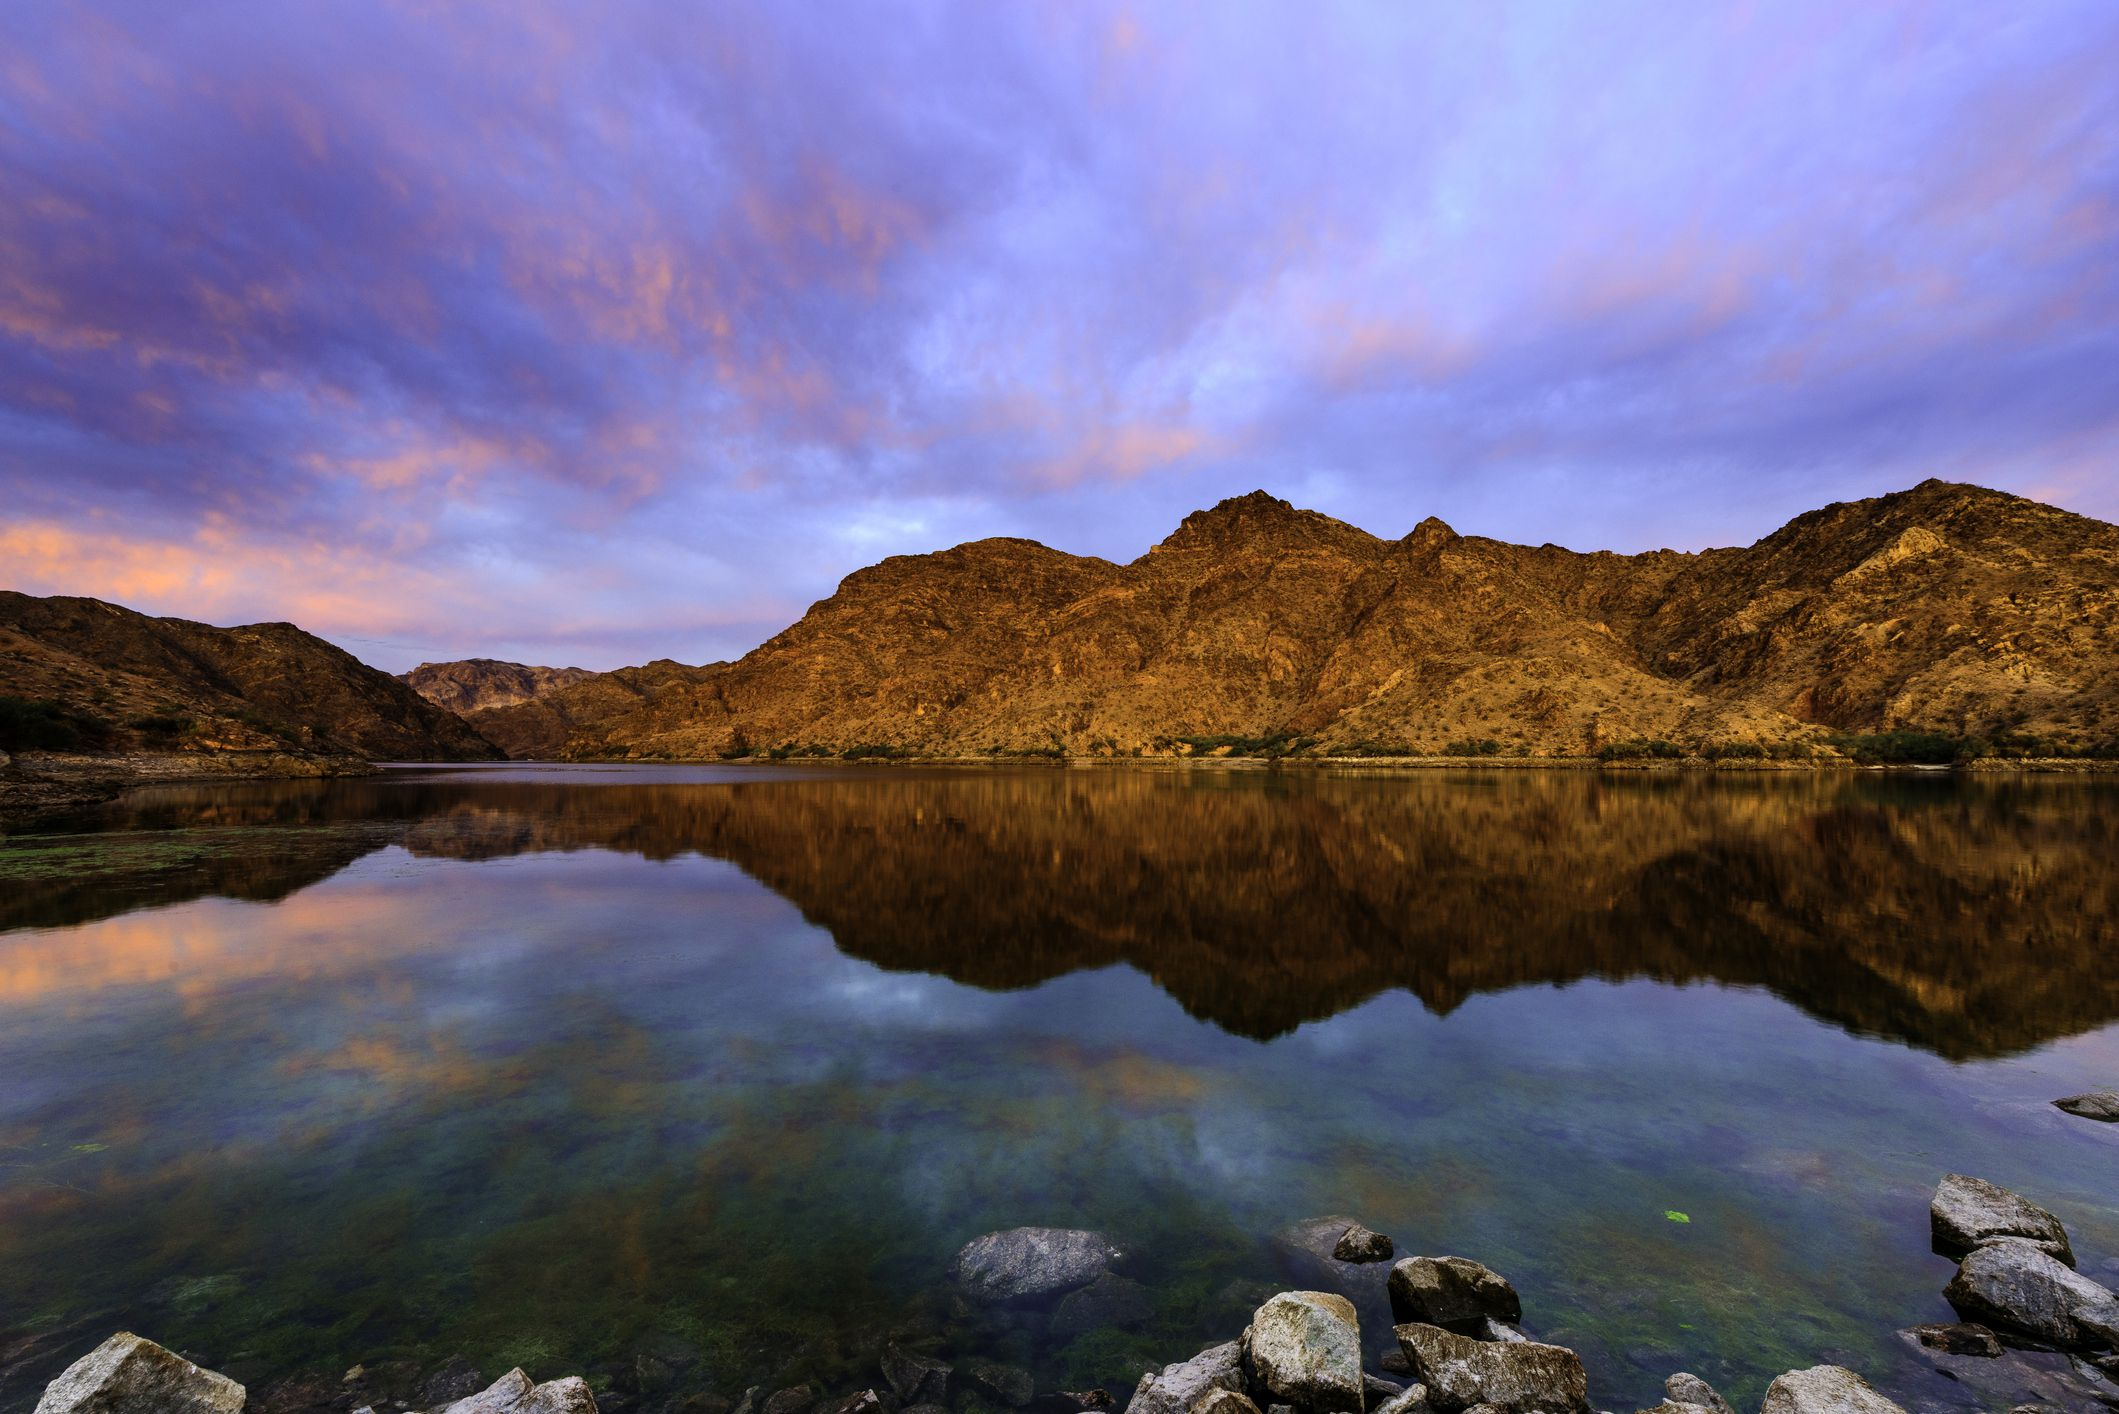 Lake Mead National Recreation Area: The Complete Guide